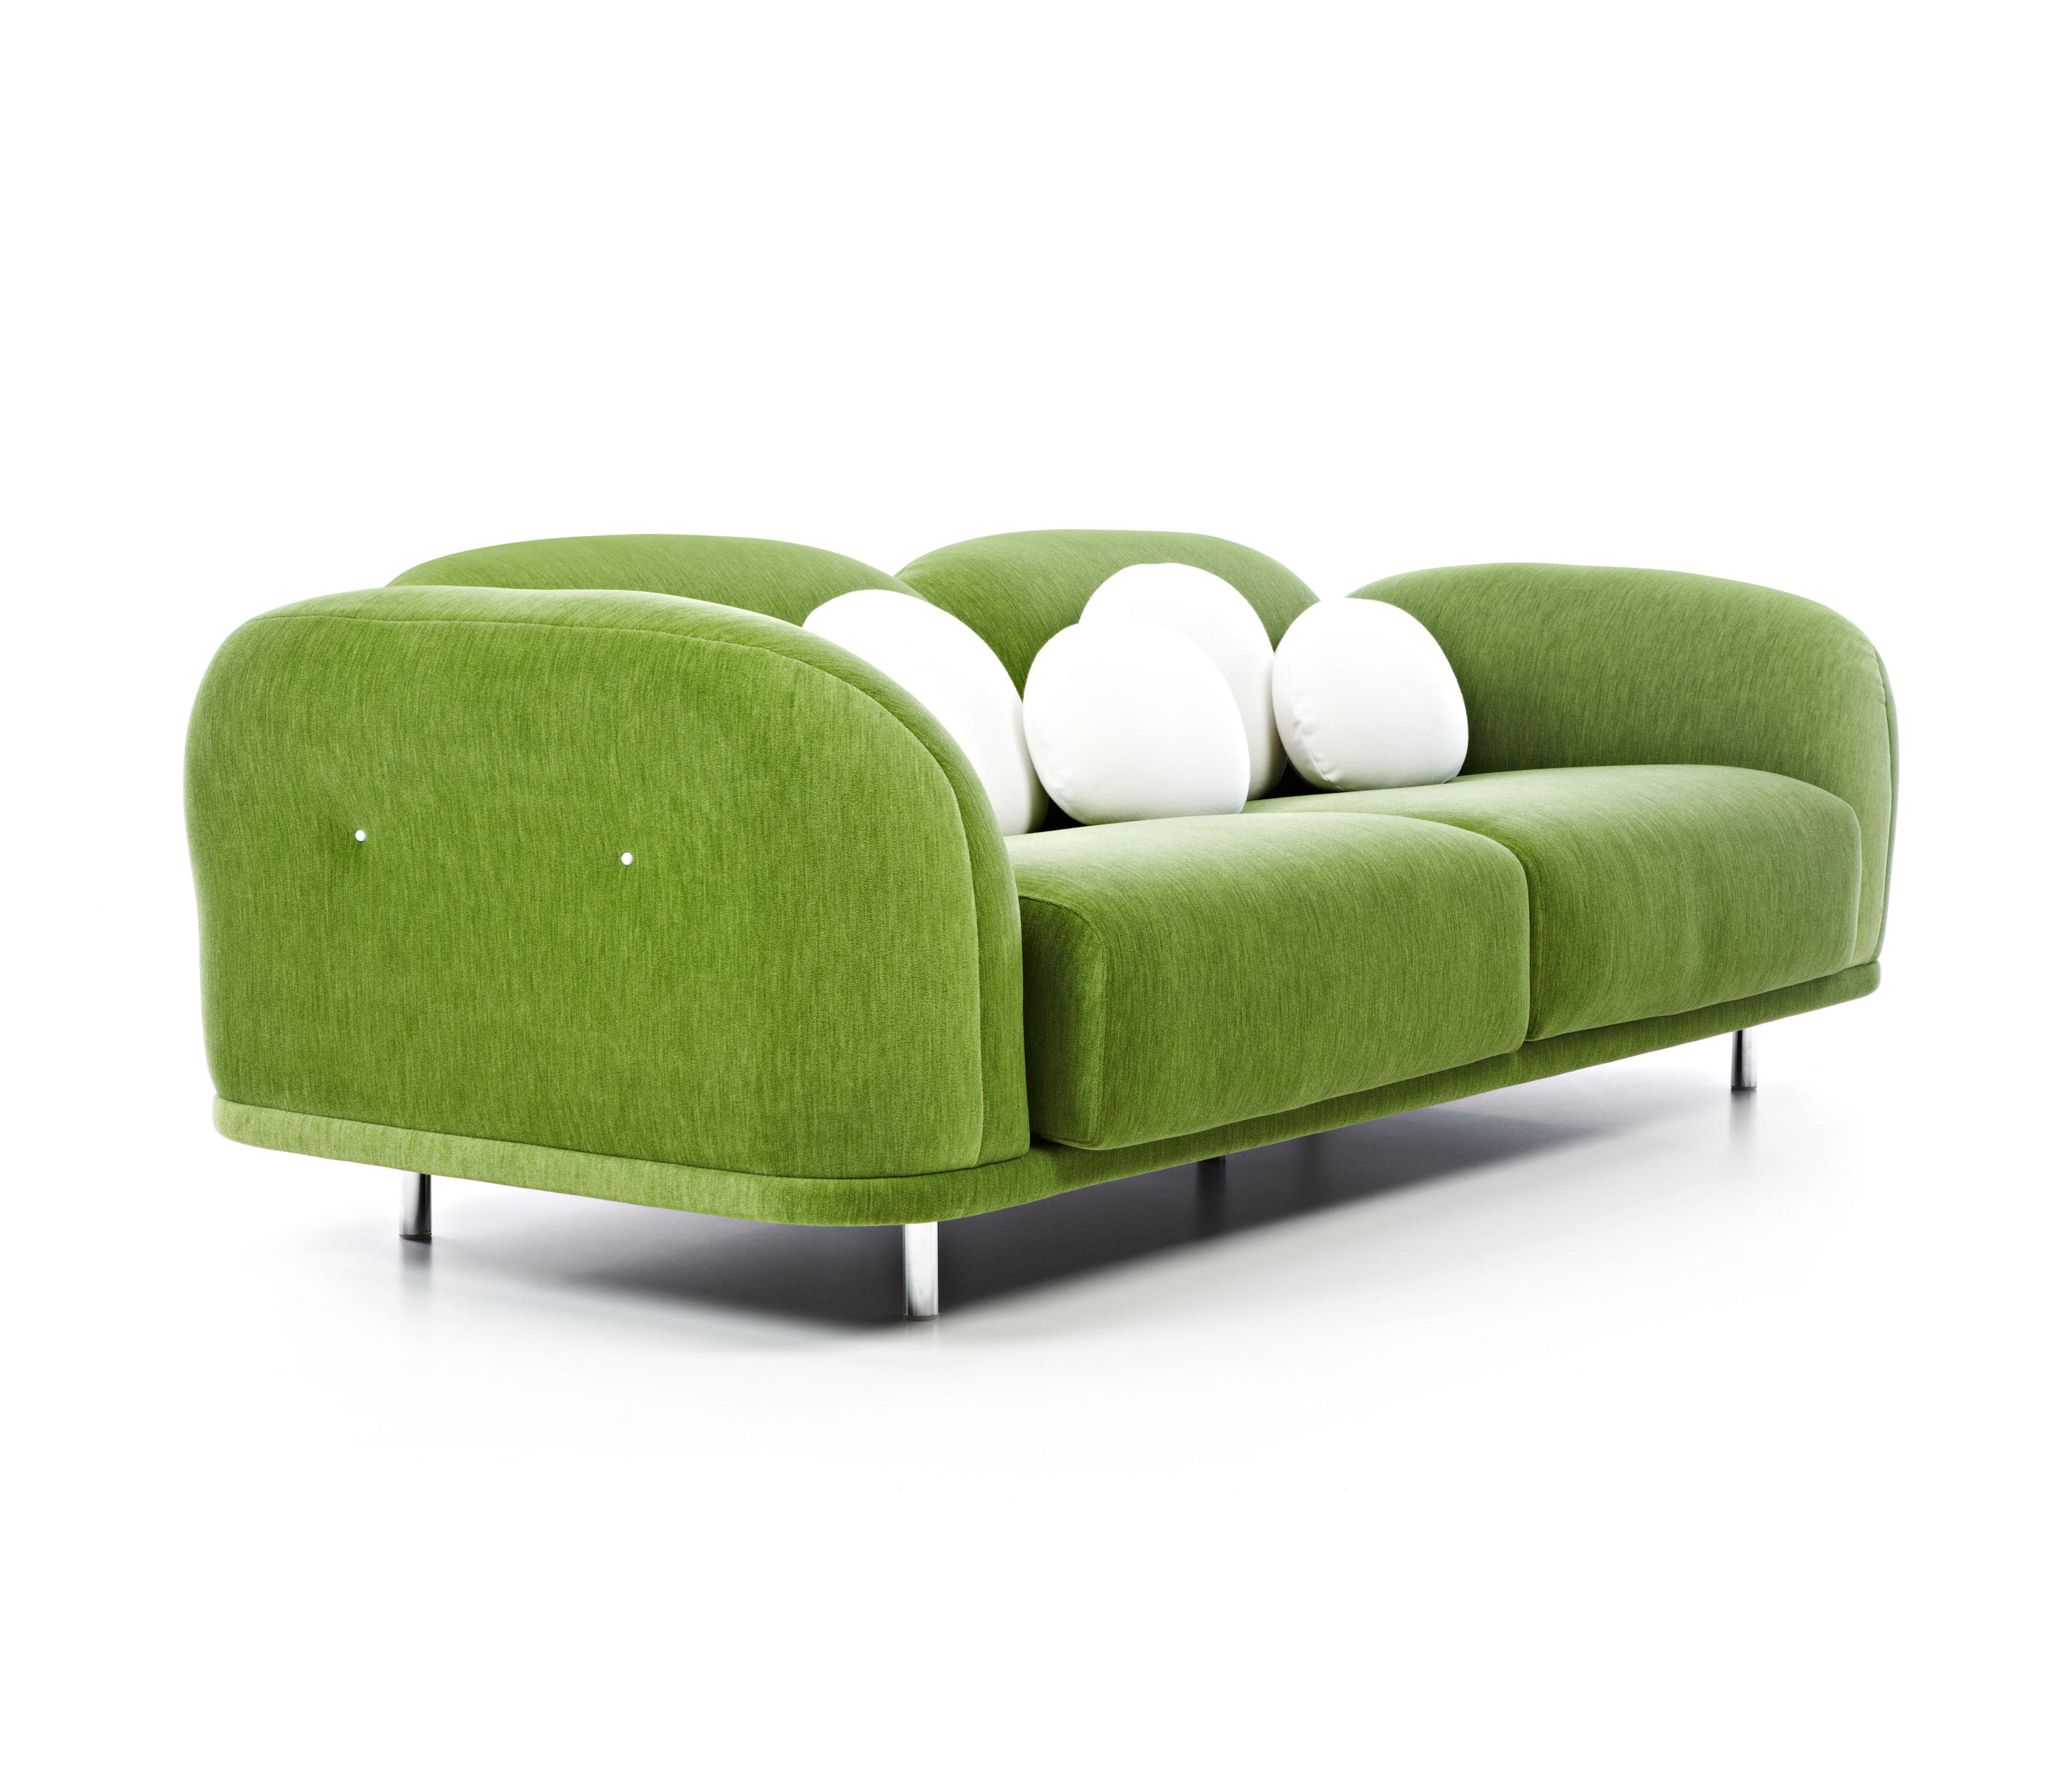 cloud sofa lounge sofas from moooi architonic. Black Bedroom Furniture Sets. Home Design Ideas